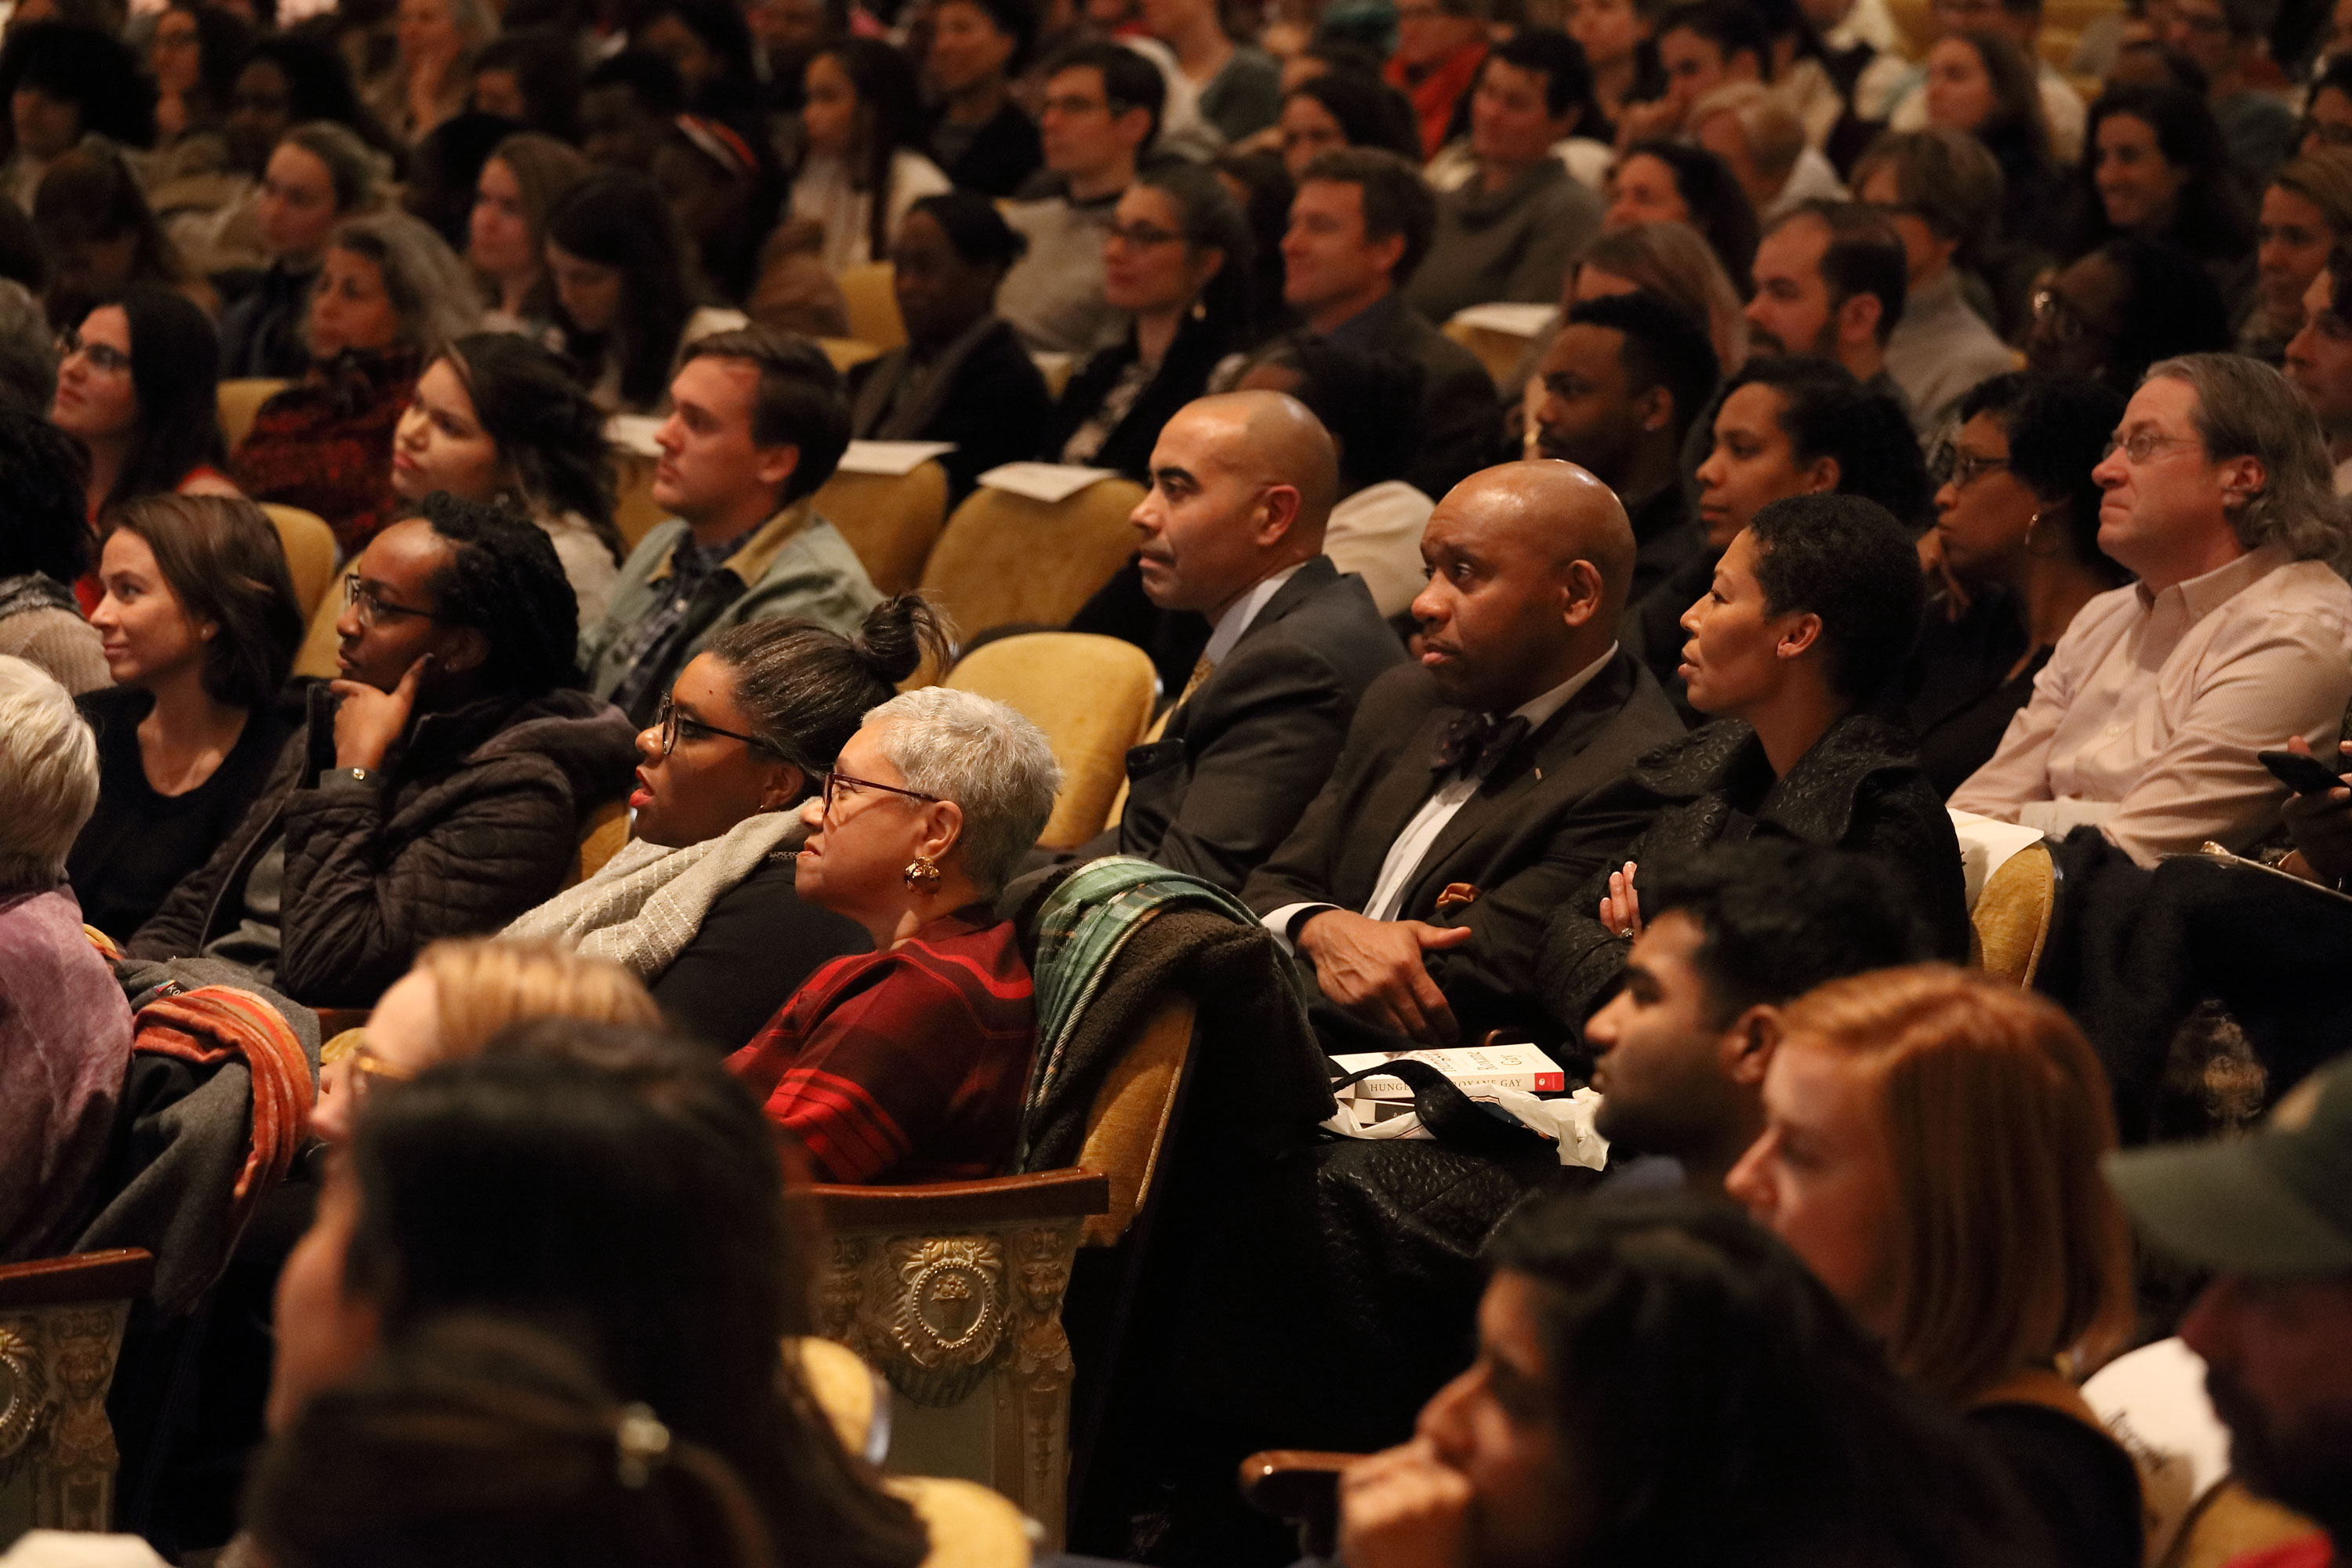 The packed house included UVA faculty, staff, and students and members of the Charlottesville community.